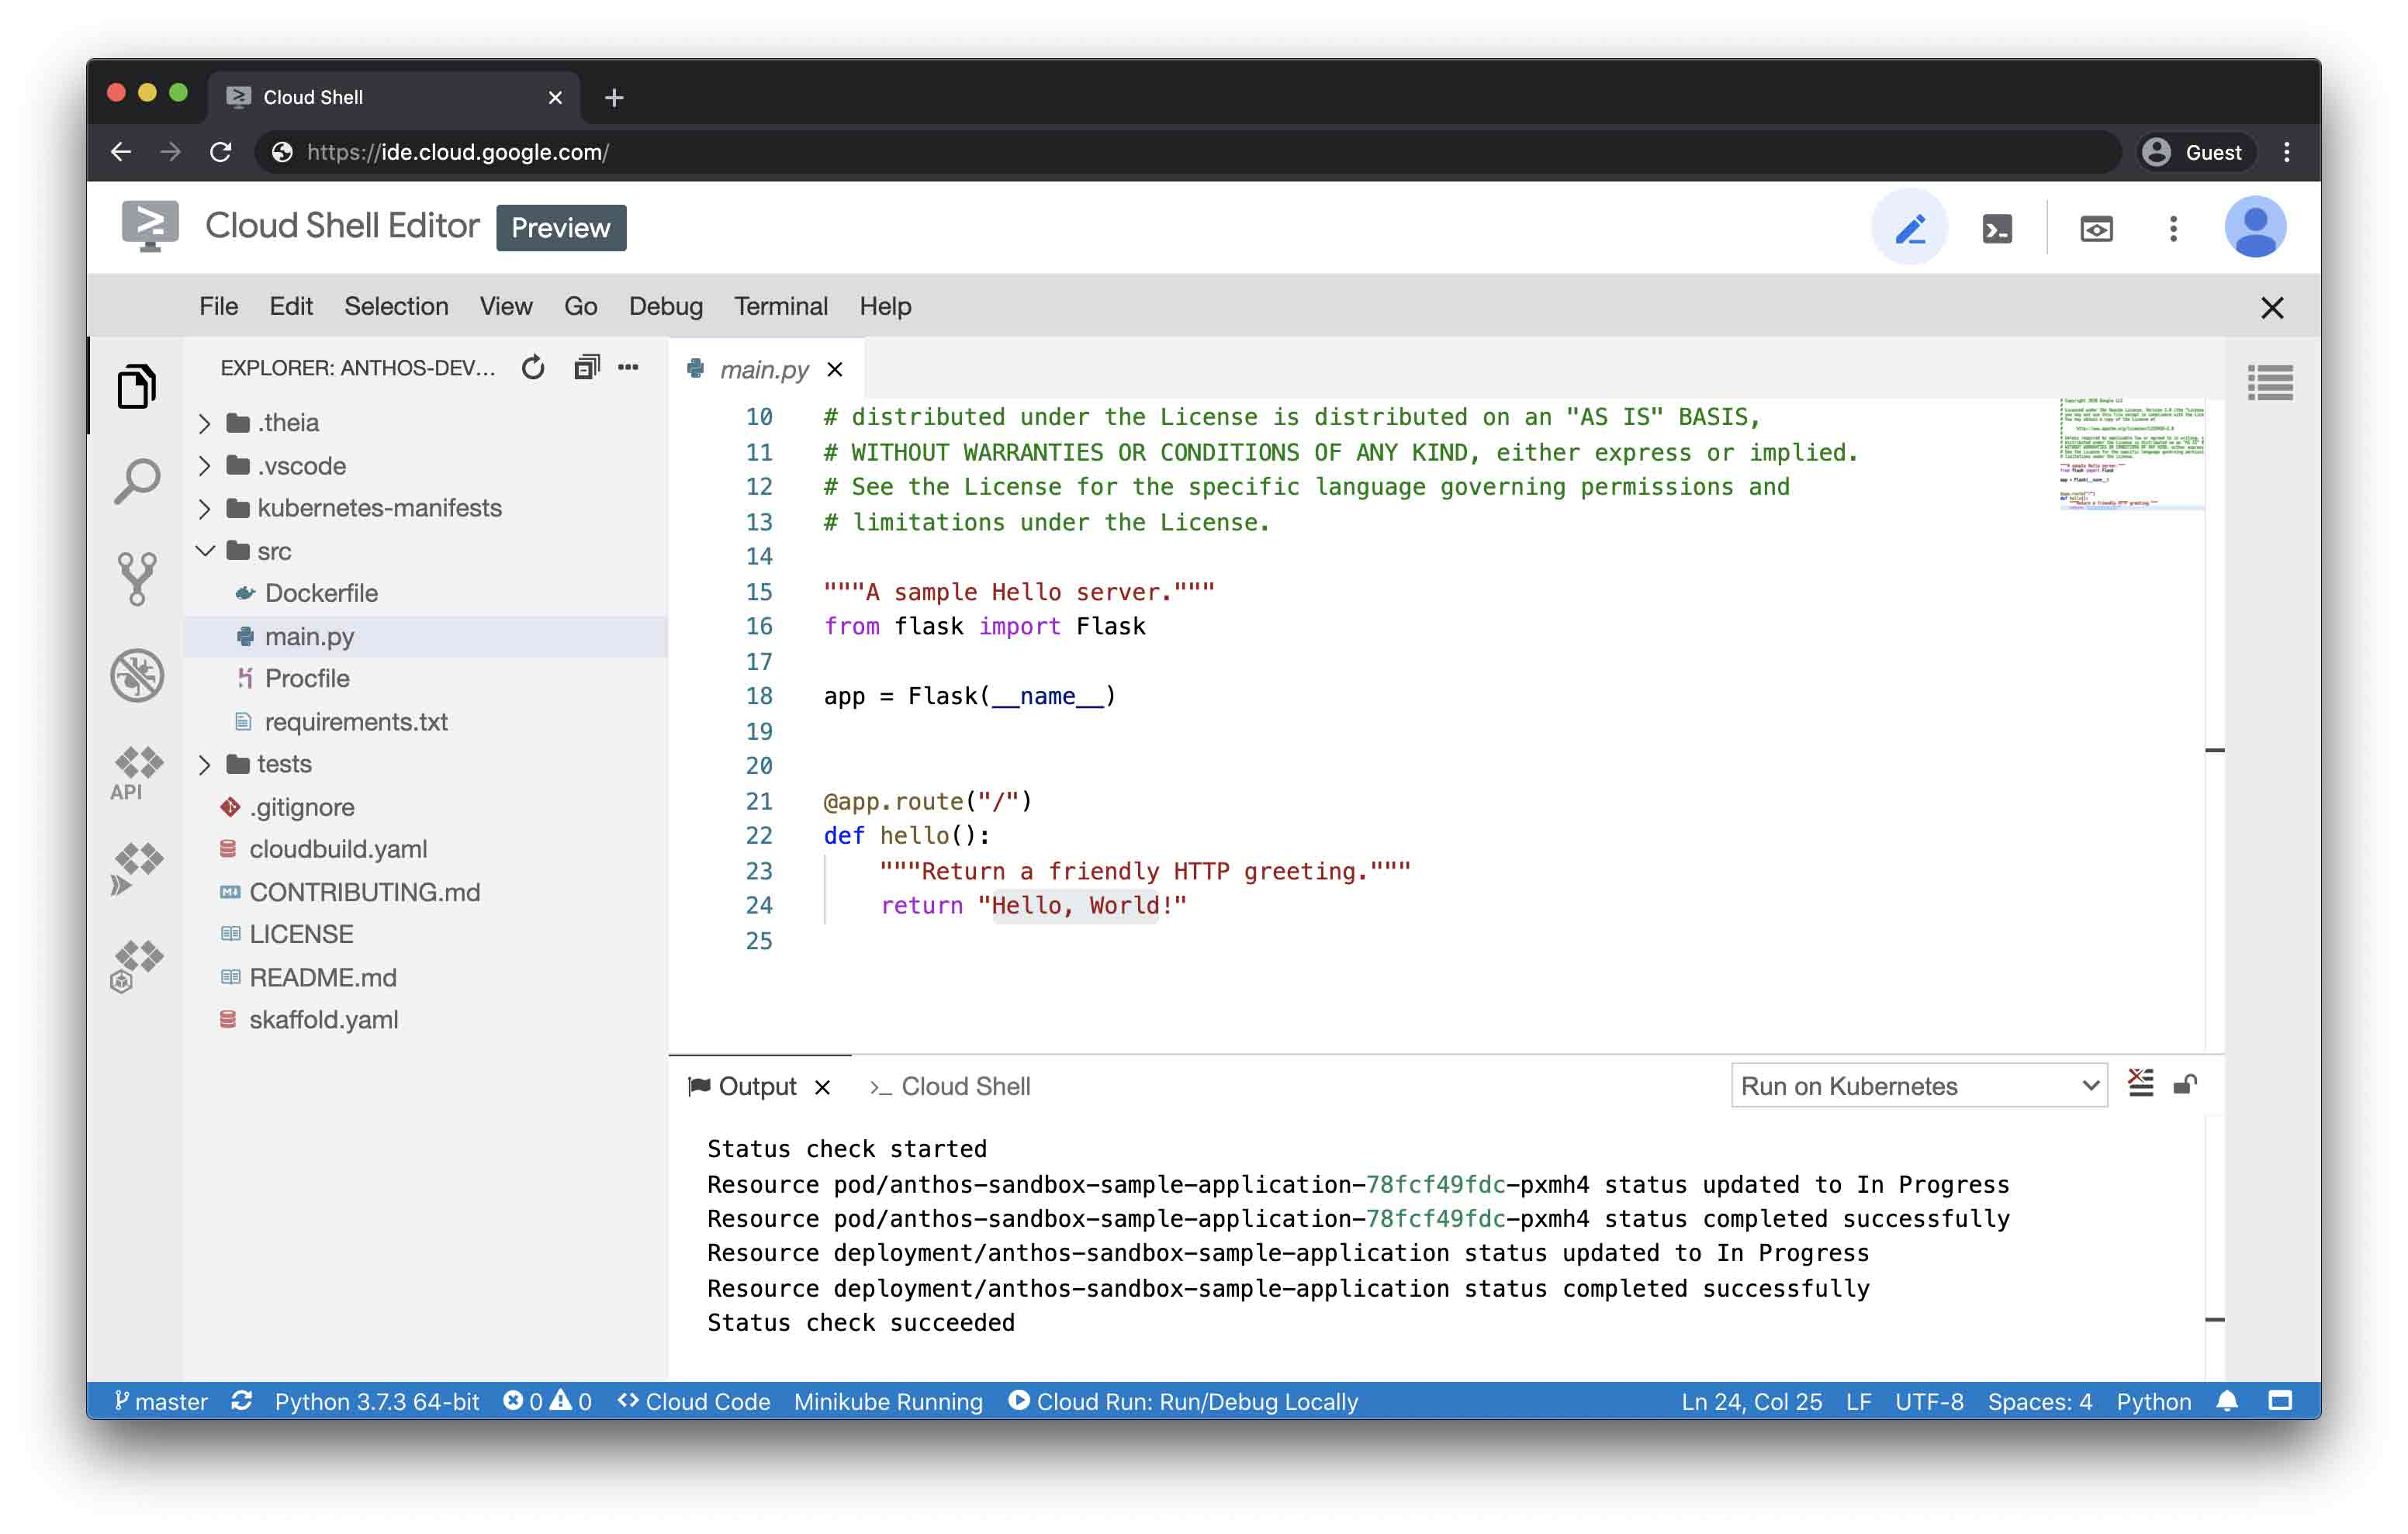 google cloud shell editor.jpg